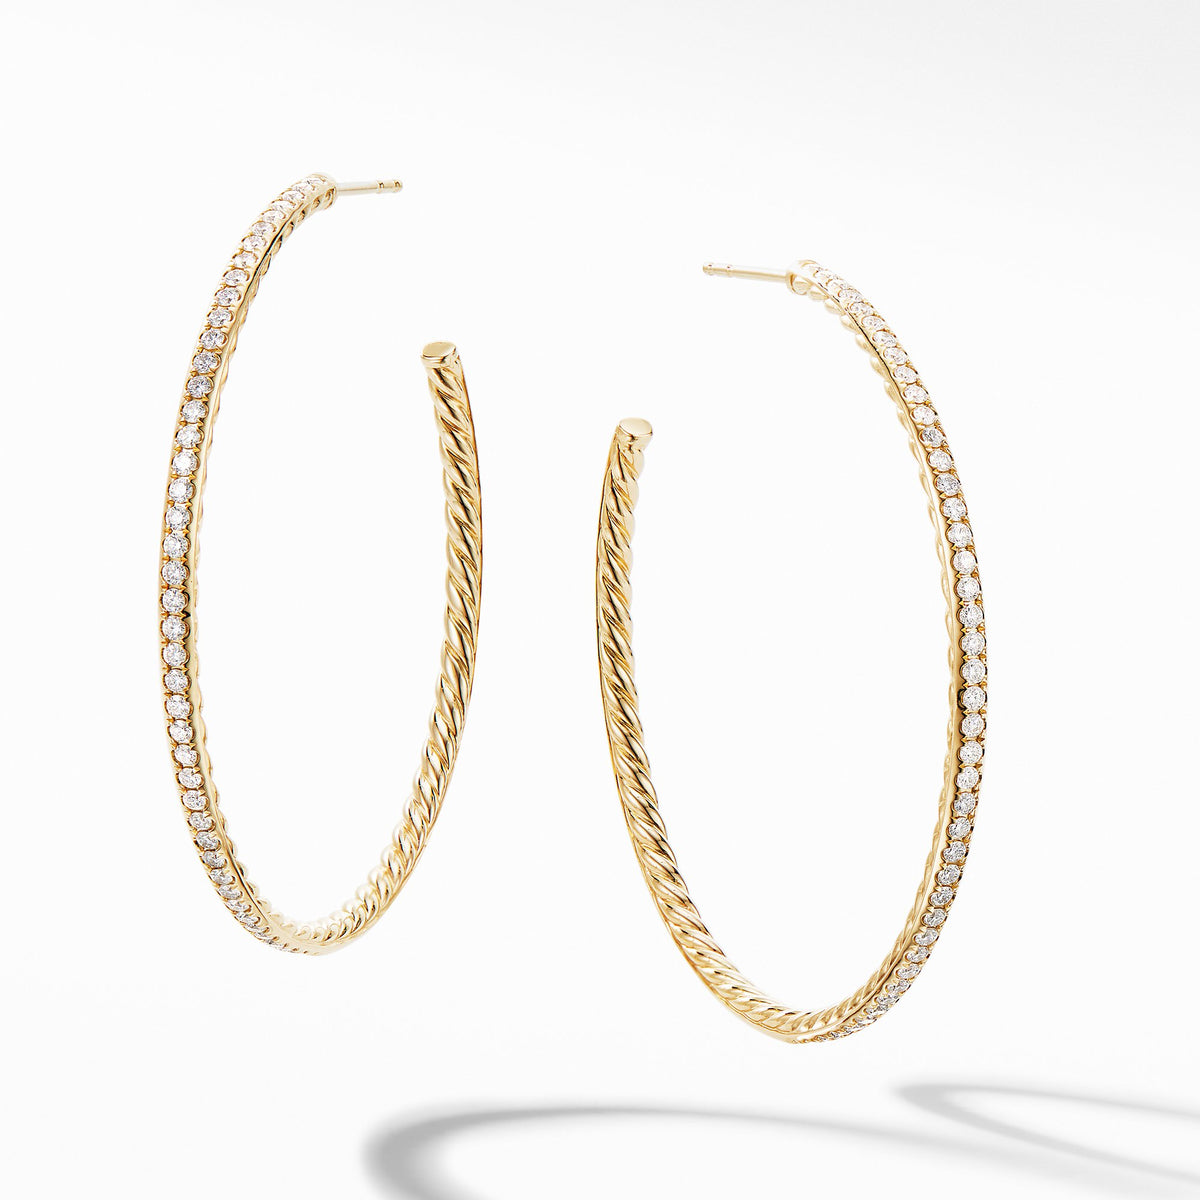 Large Hoop Earrings in 18K Yellow Gold with  Pave Diamonds